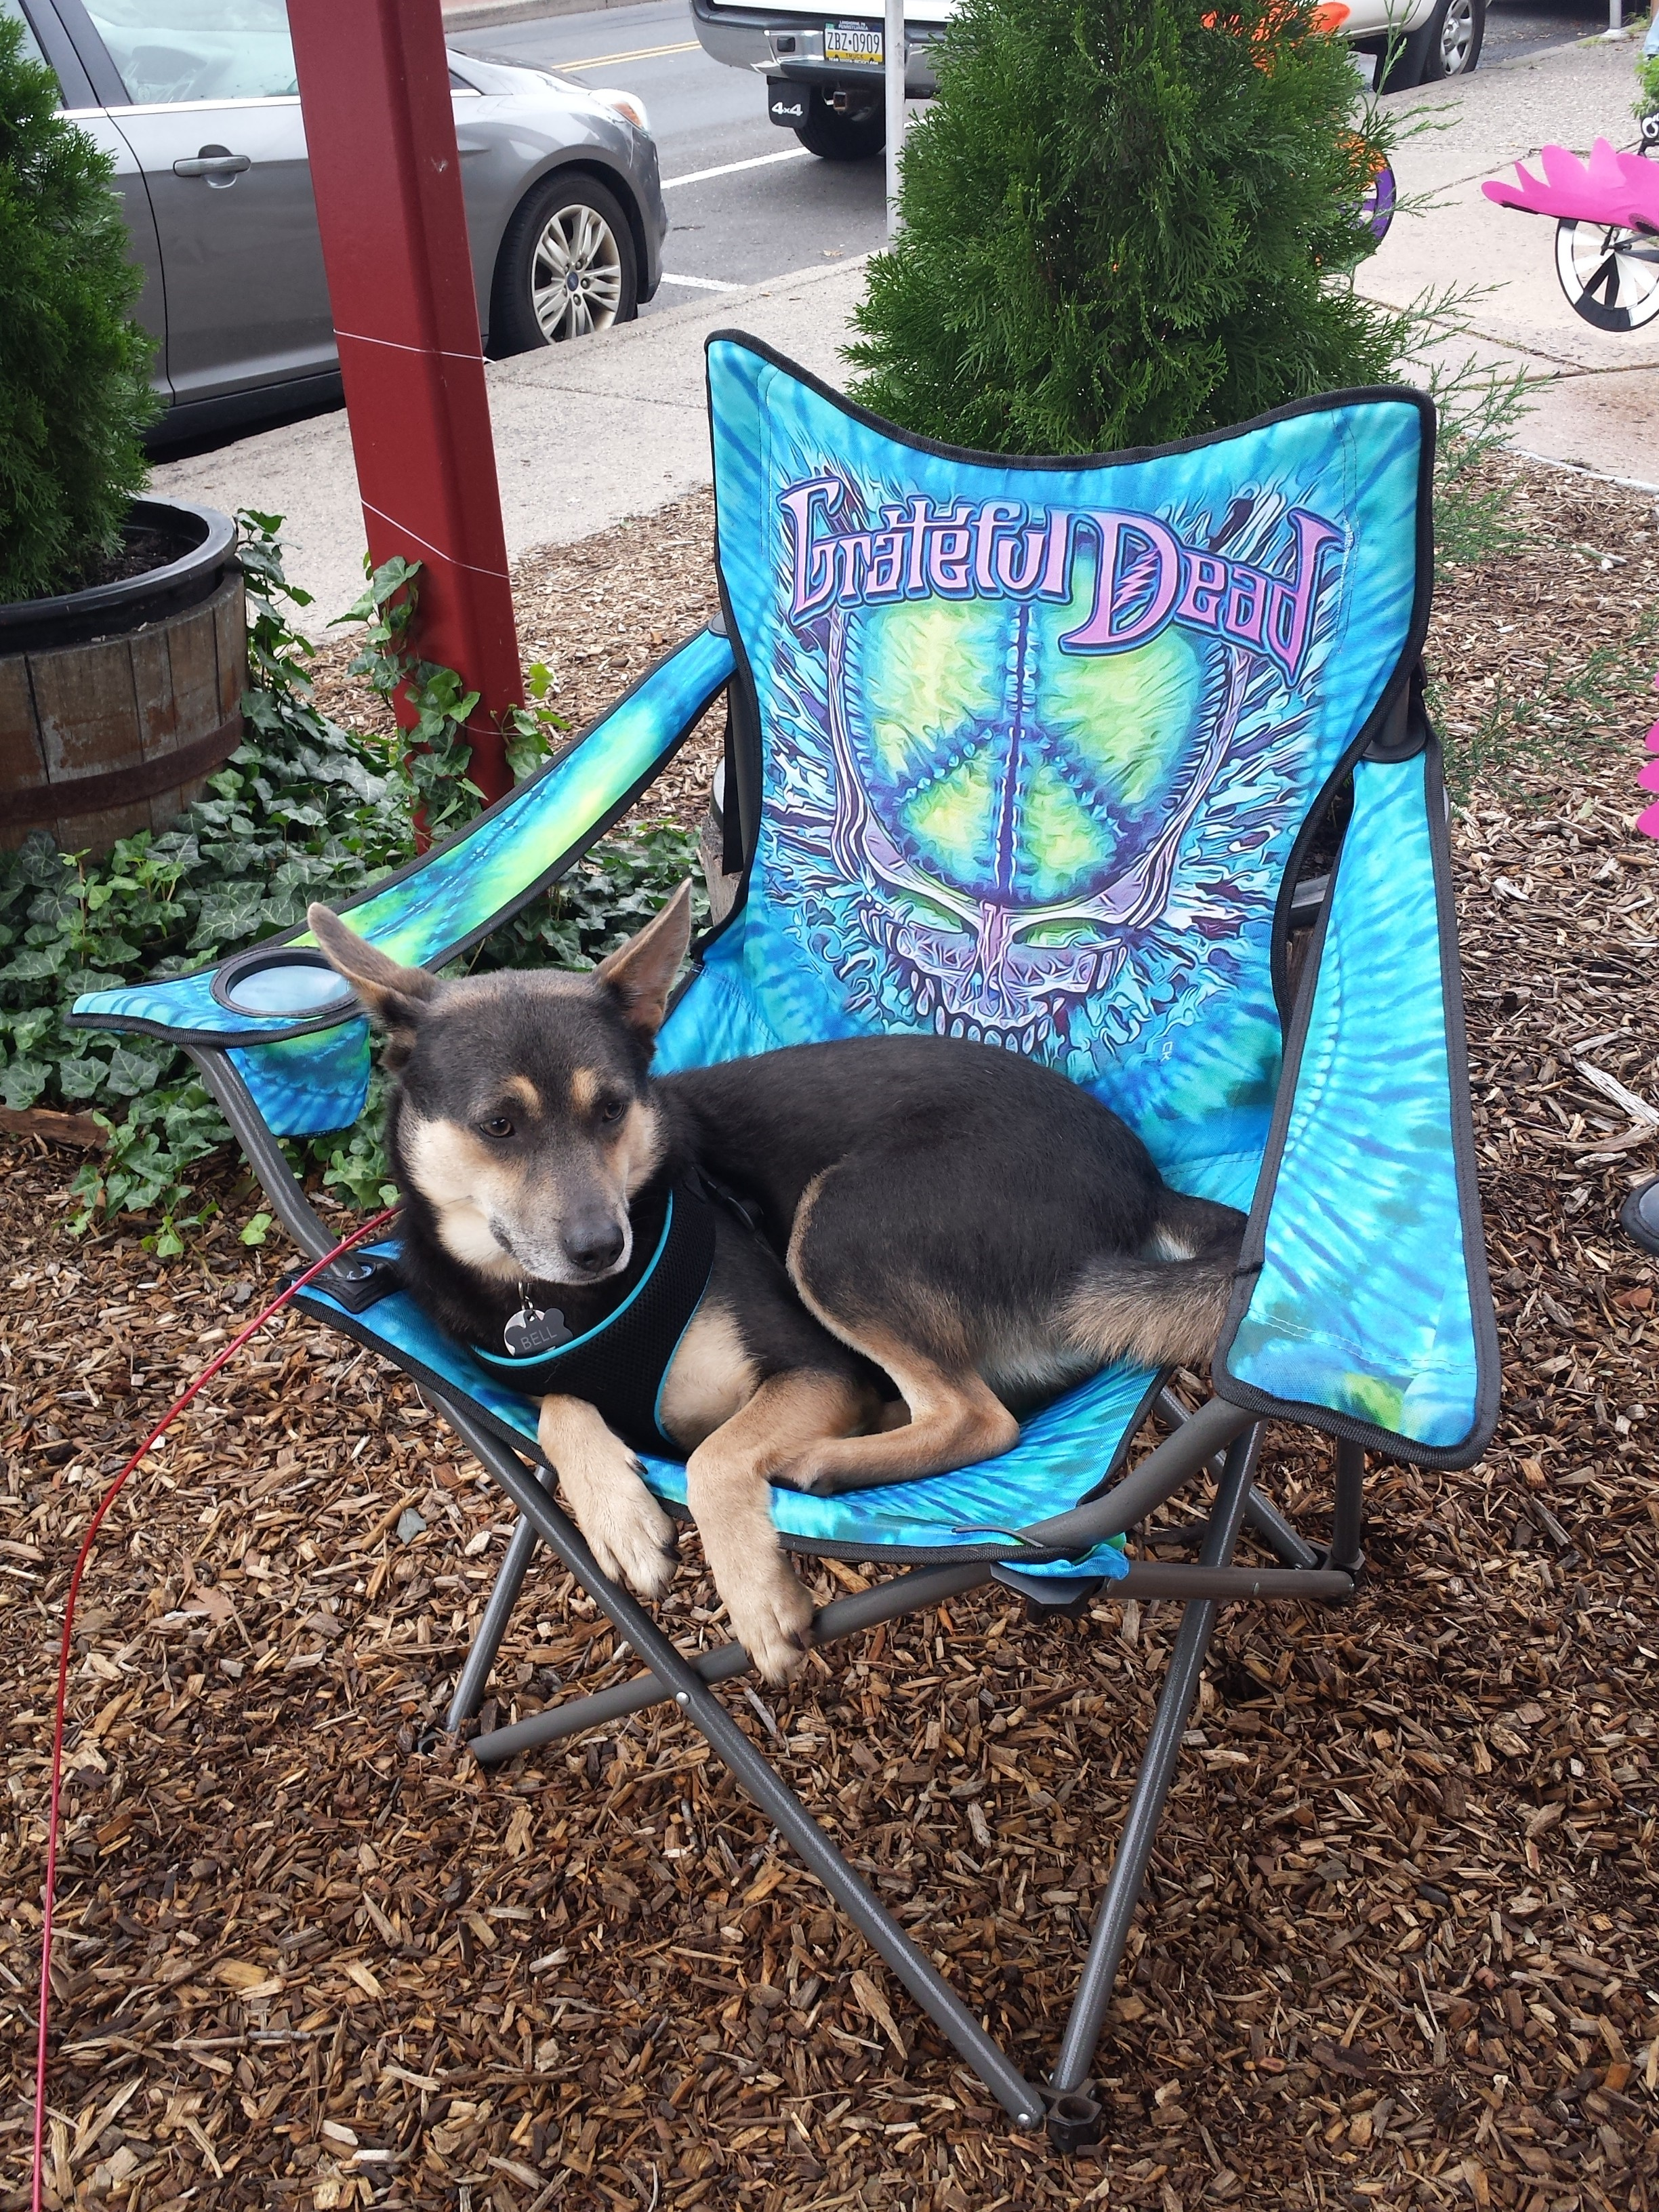 Tie Dye Camping Chair. This chair is OFFICIALLY LICENSED BY THE GRATEFUL DEAD